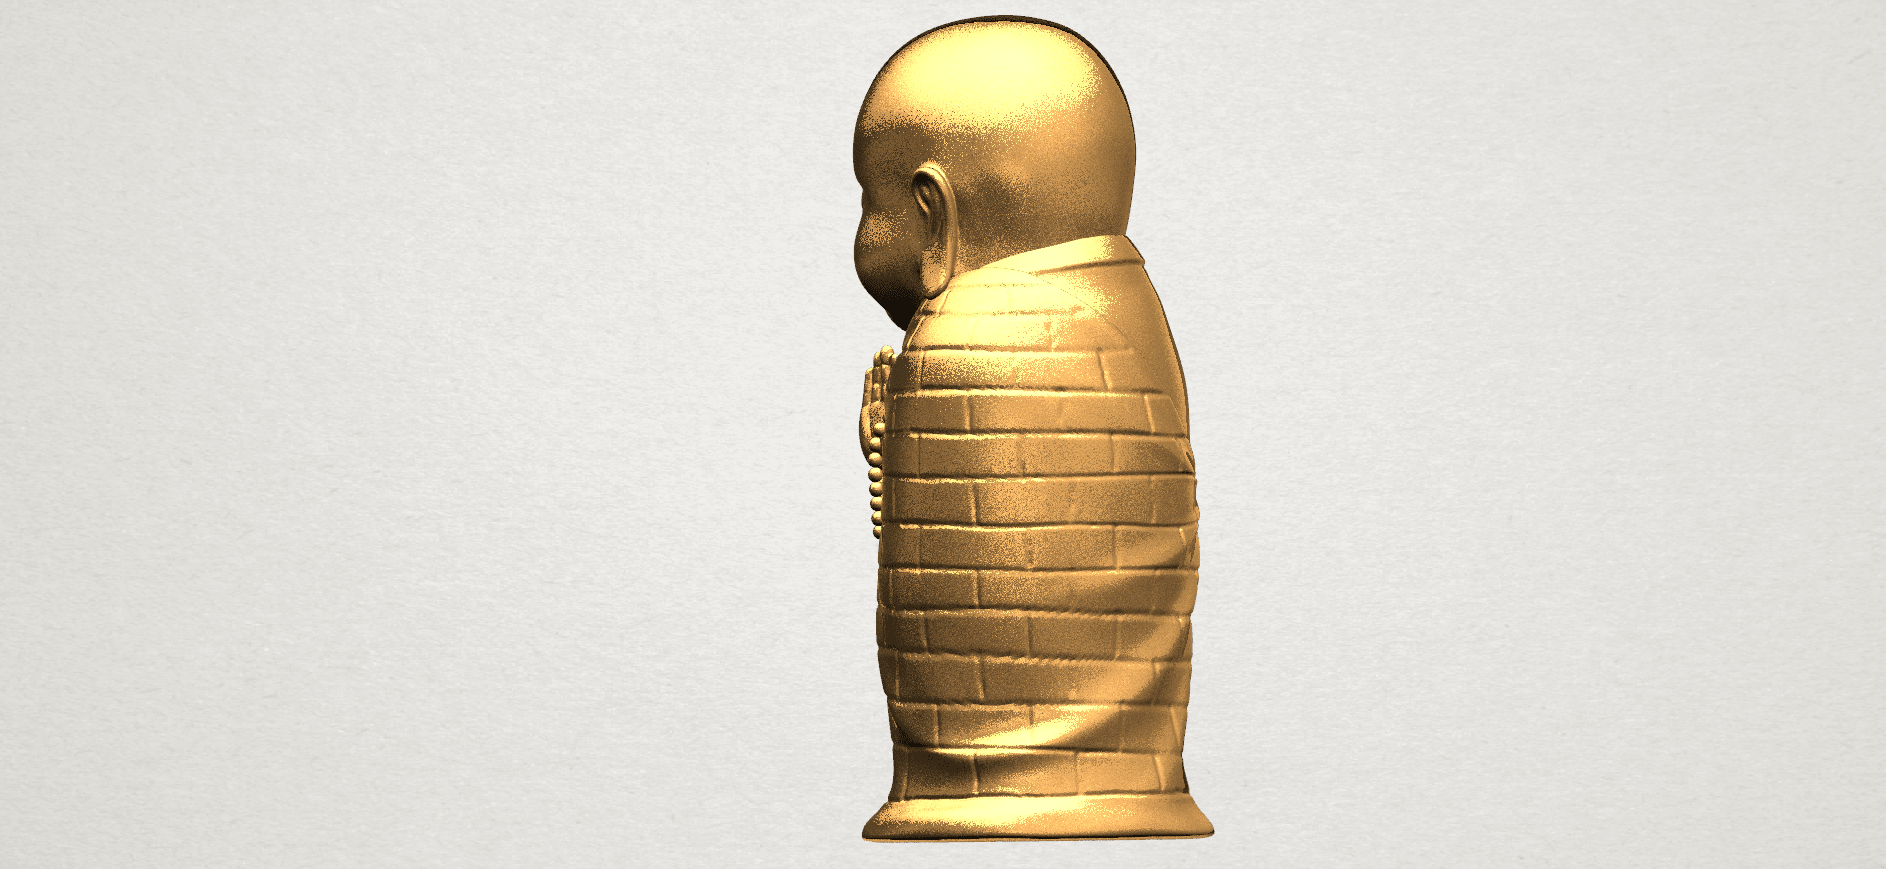 Little Monk 80mm - A03.png Download free STL file Little Monk 01 • 3D printable design, GeorgesNikkei